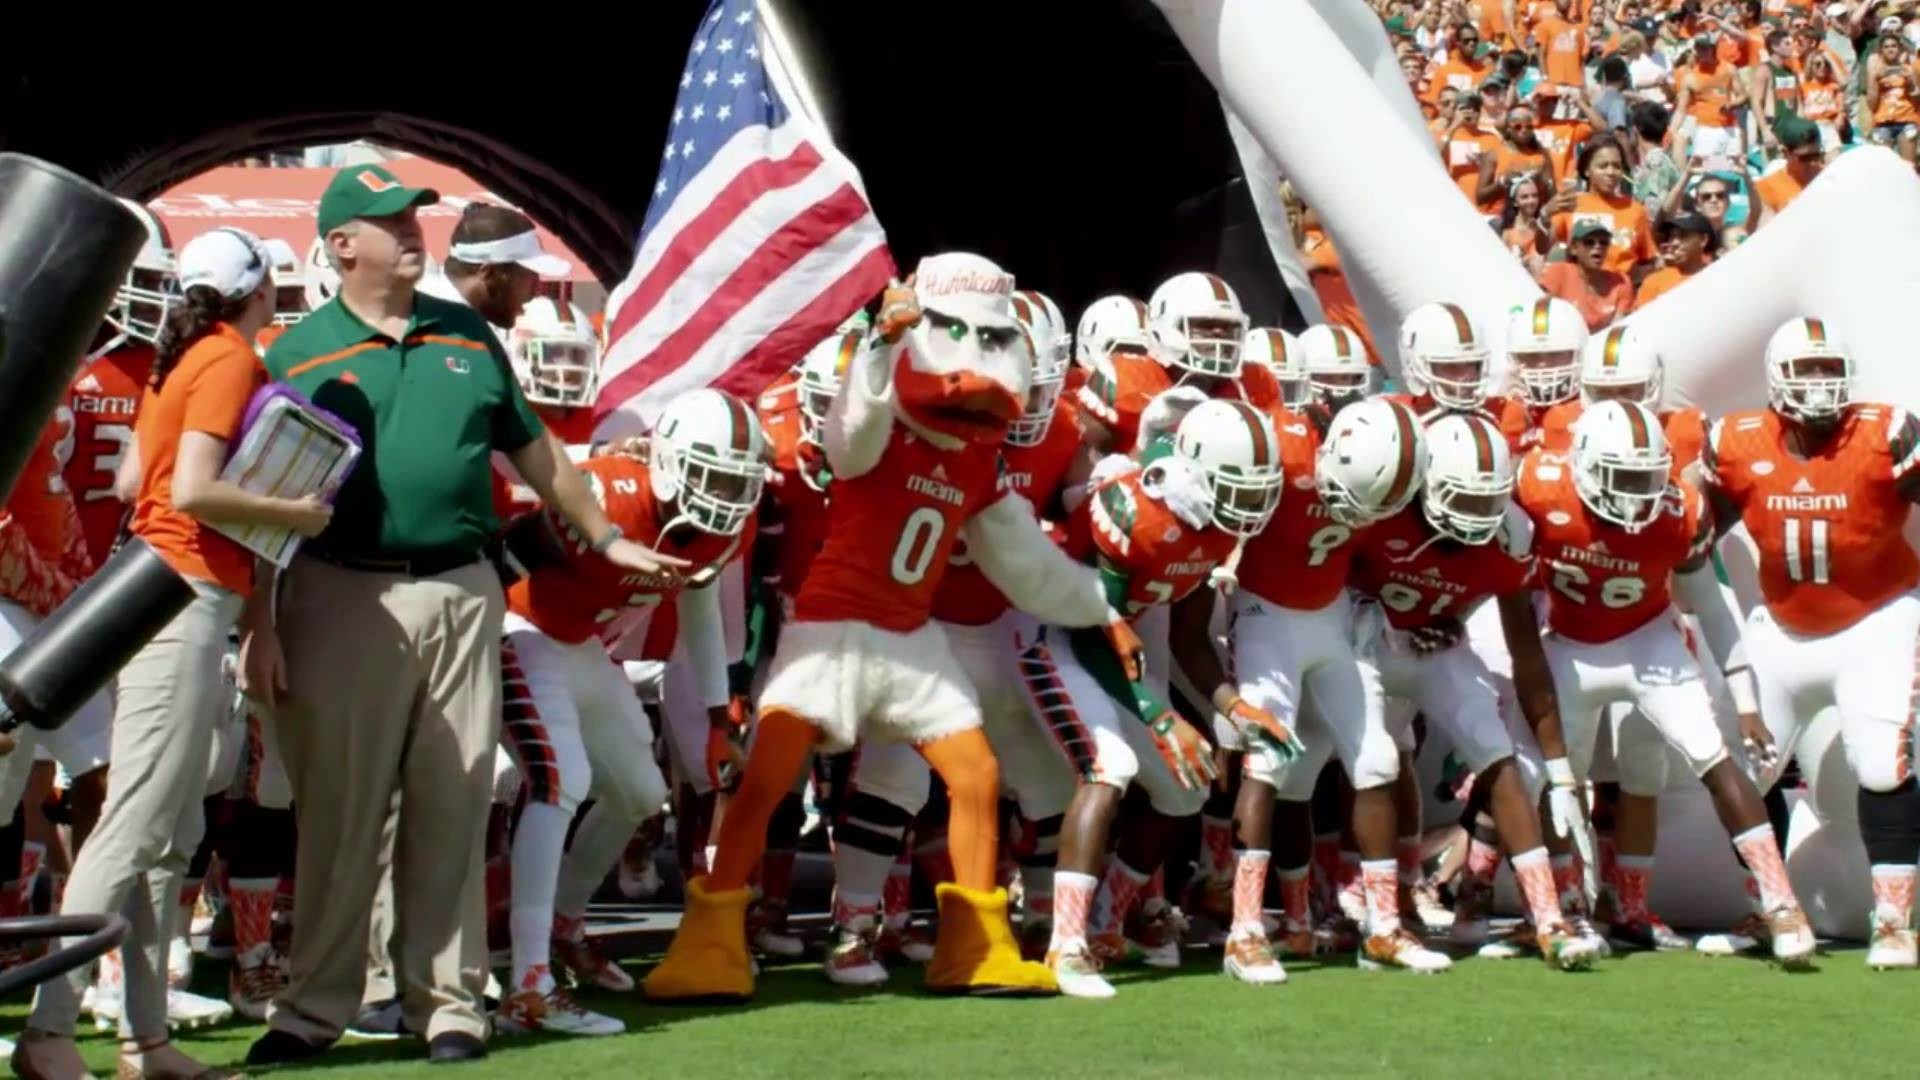 Miami Hurricanes Football — Latest News, Images and Photos — CrypticImages